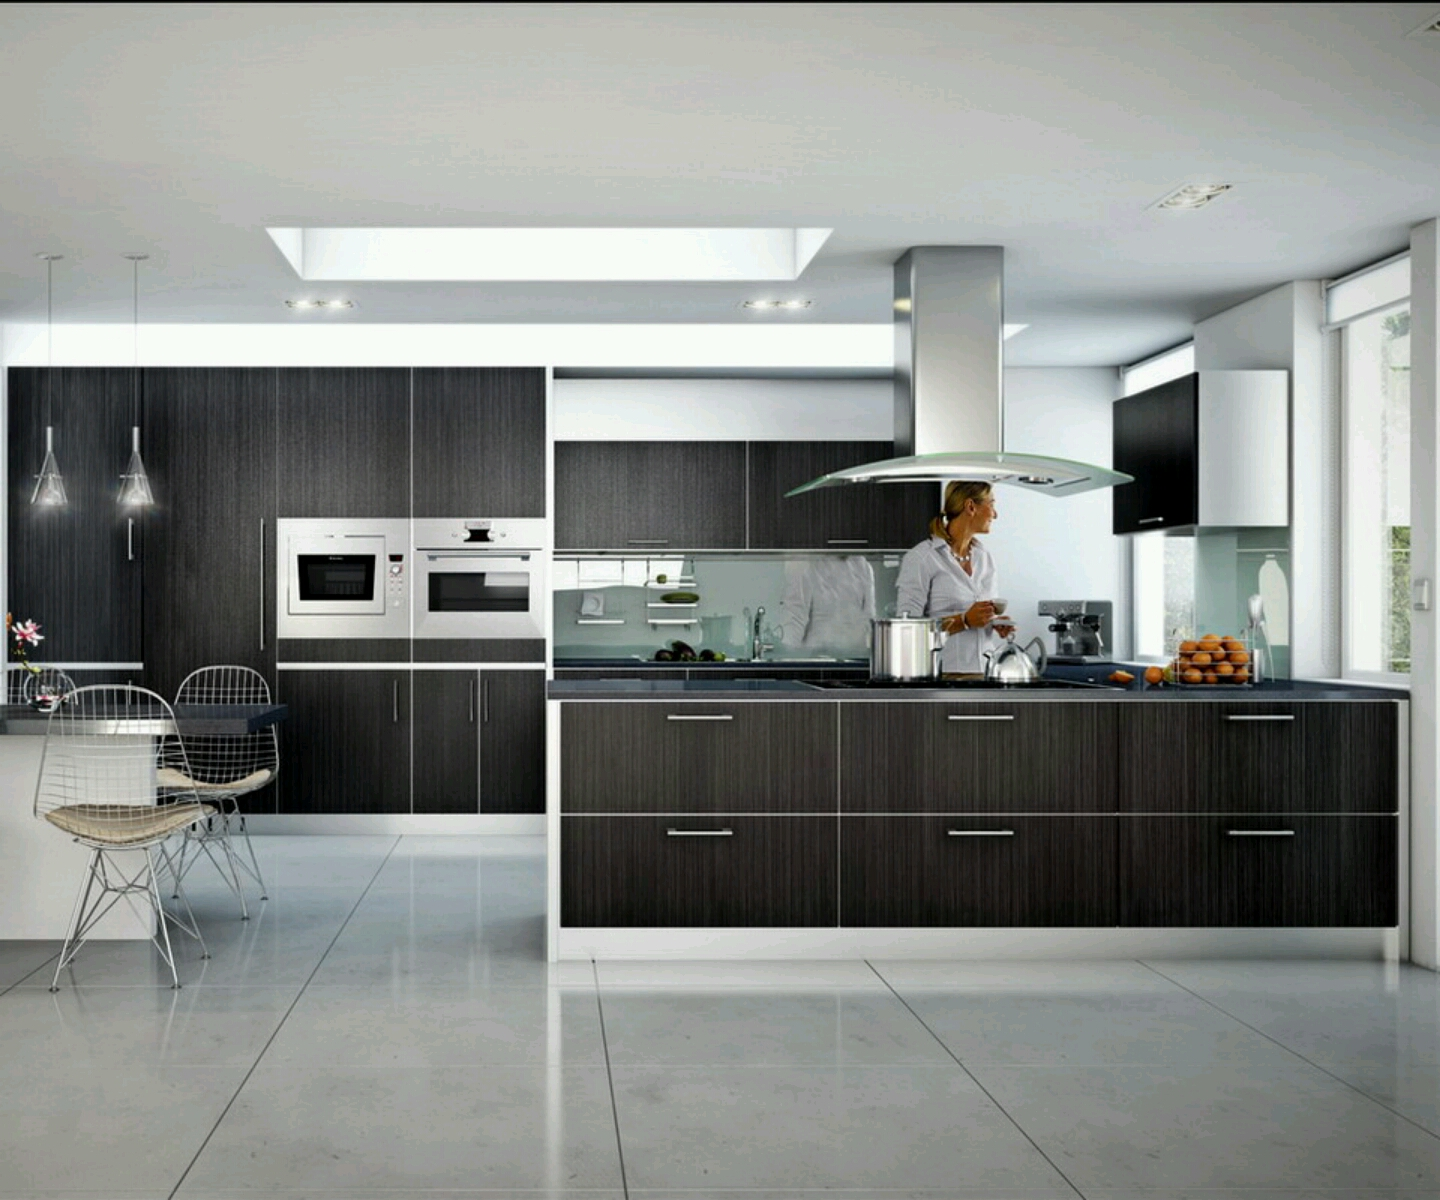 contemporary kitchen design ideas modern kitchen designs photo gallery decorating ideas 314